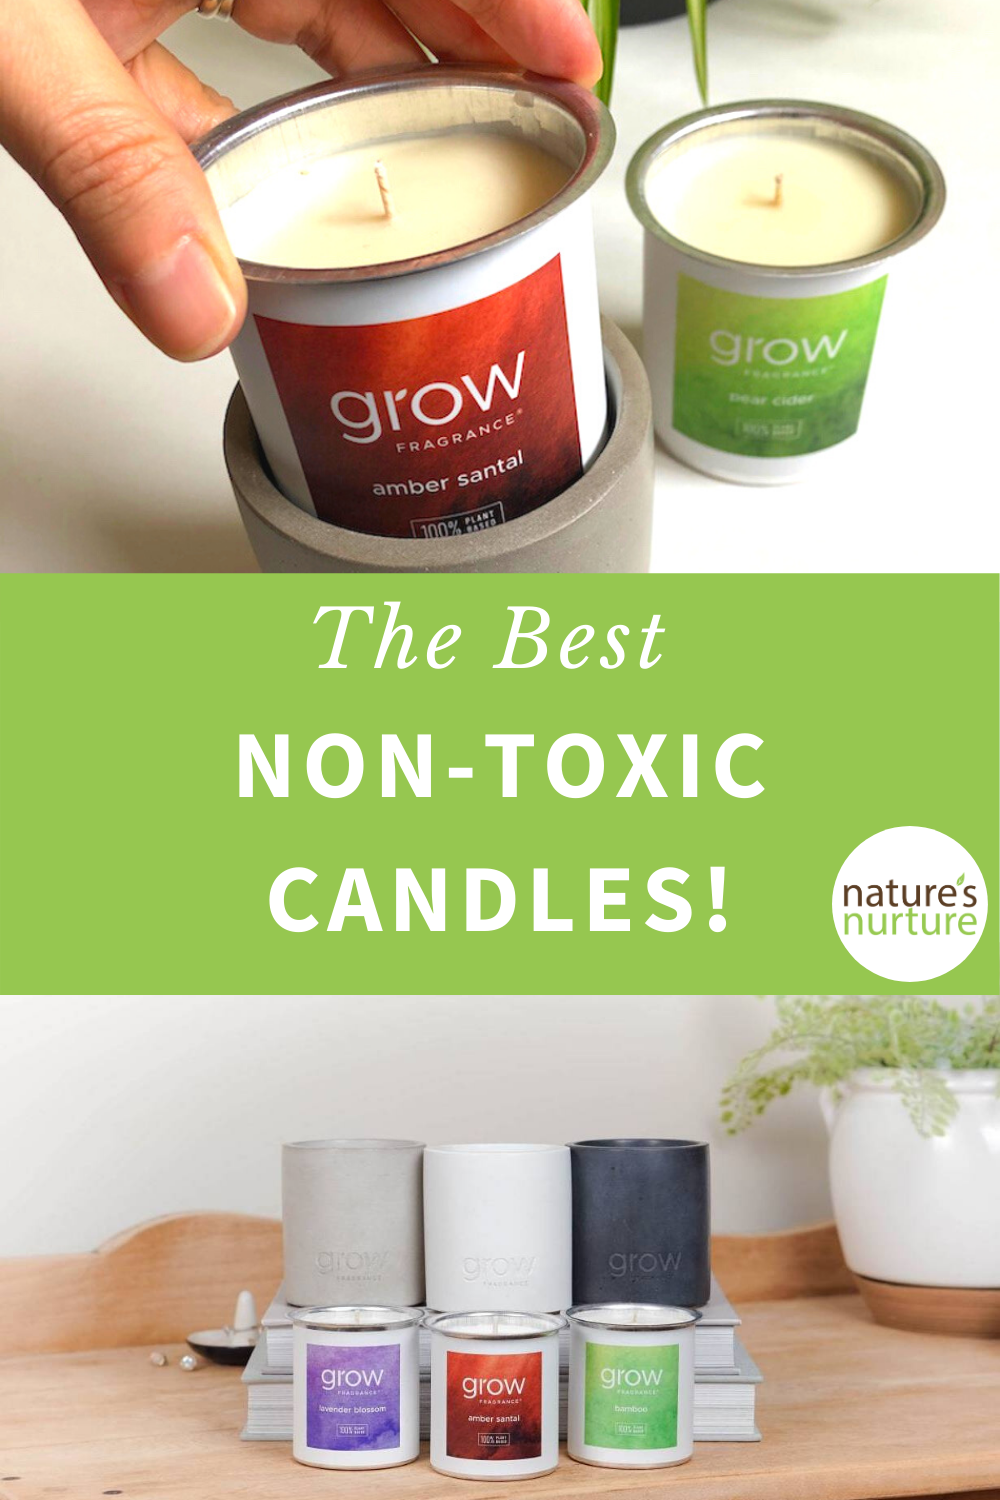 The Best Non-Toxic Candles